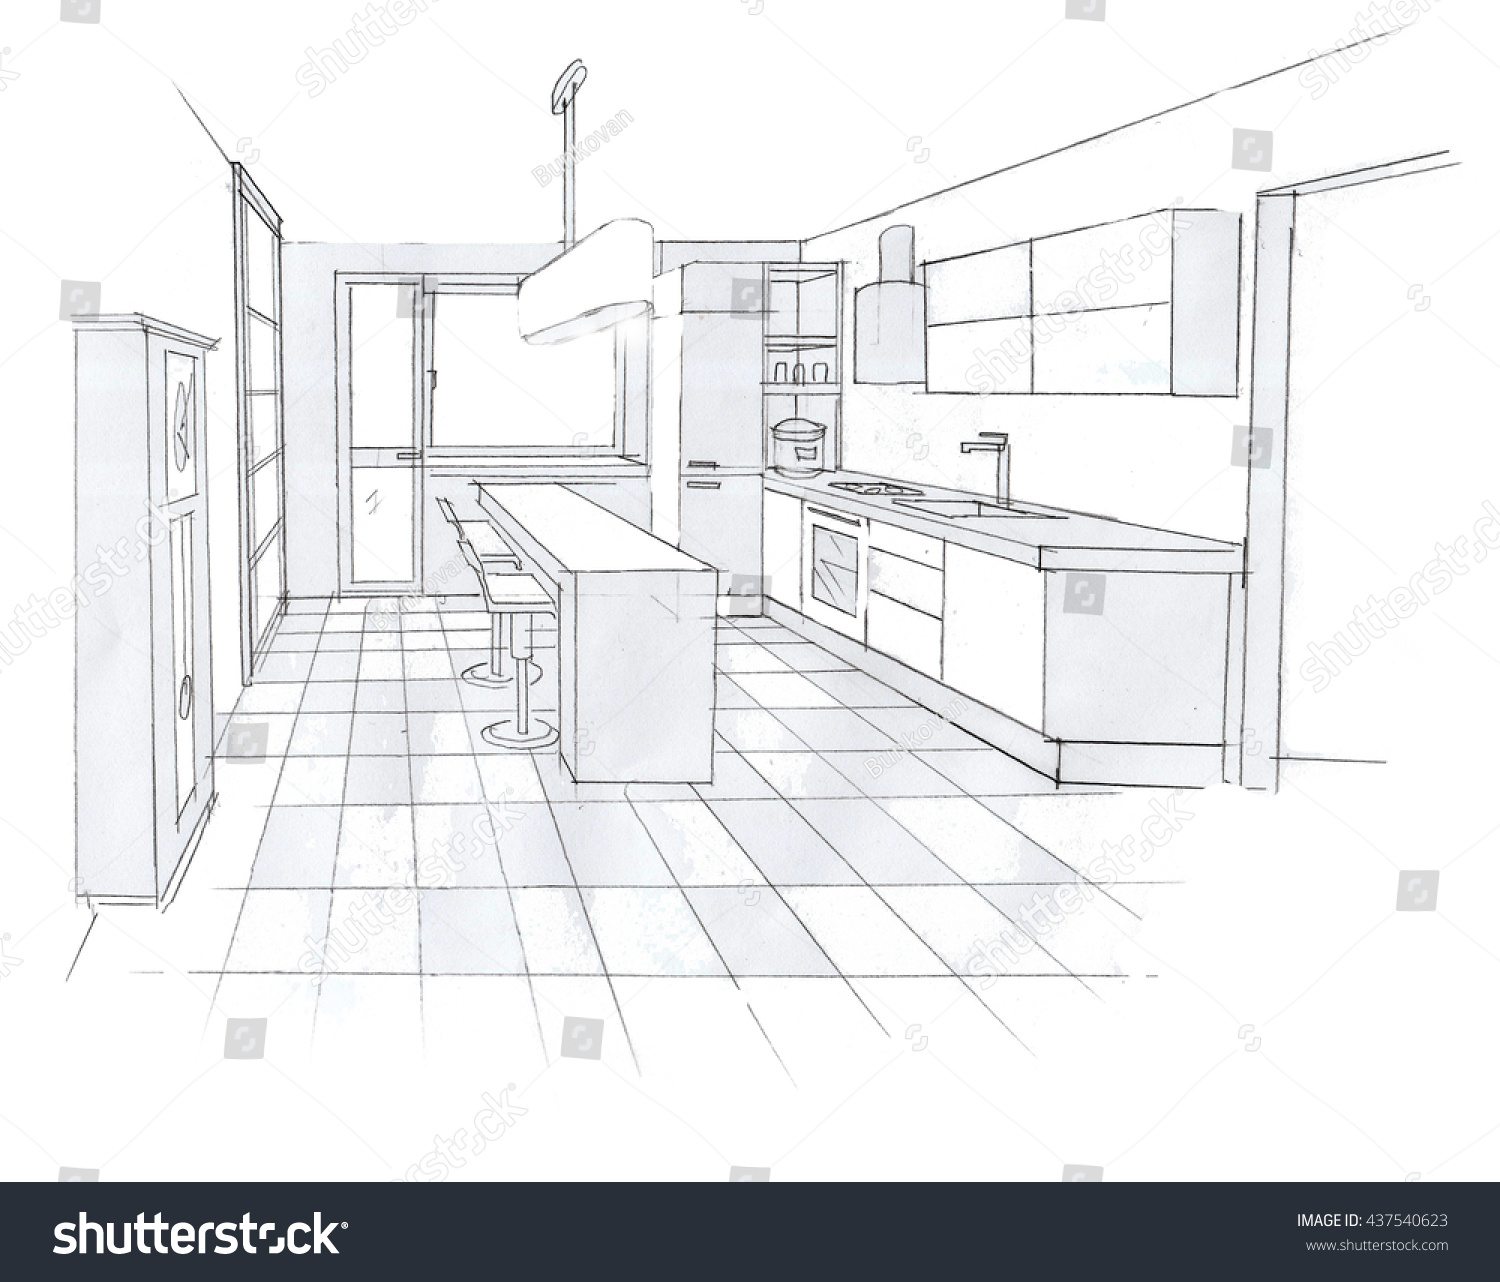 Royalty Free Interior Sketch Design Of Kitchen 437540623 Stock Photo